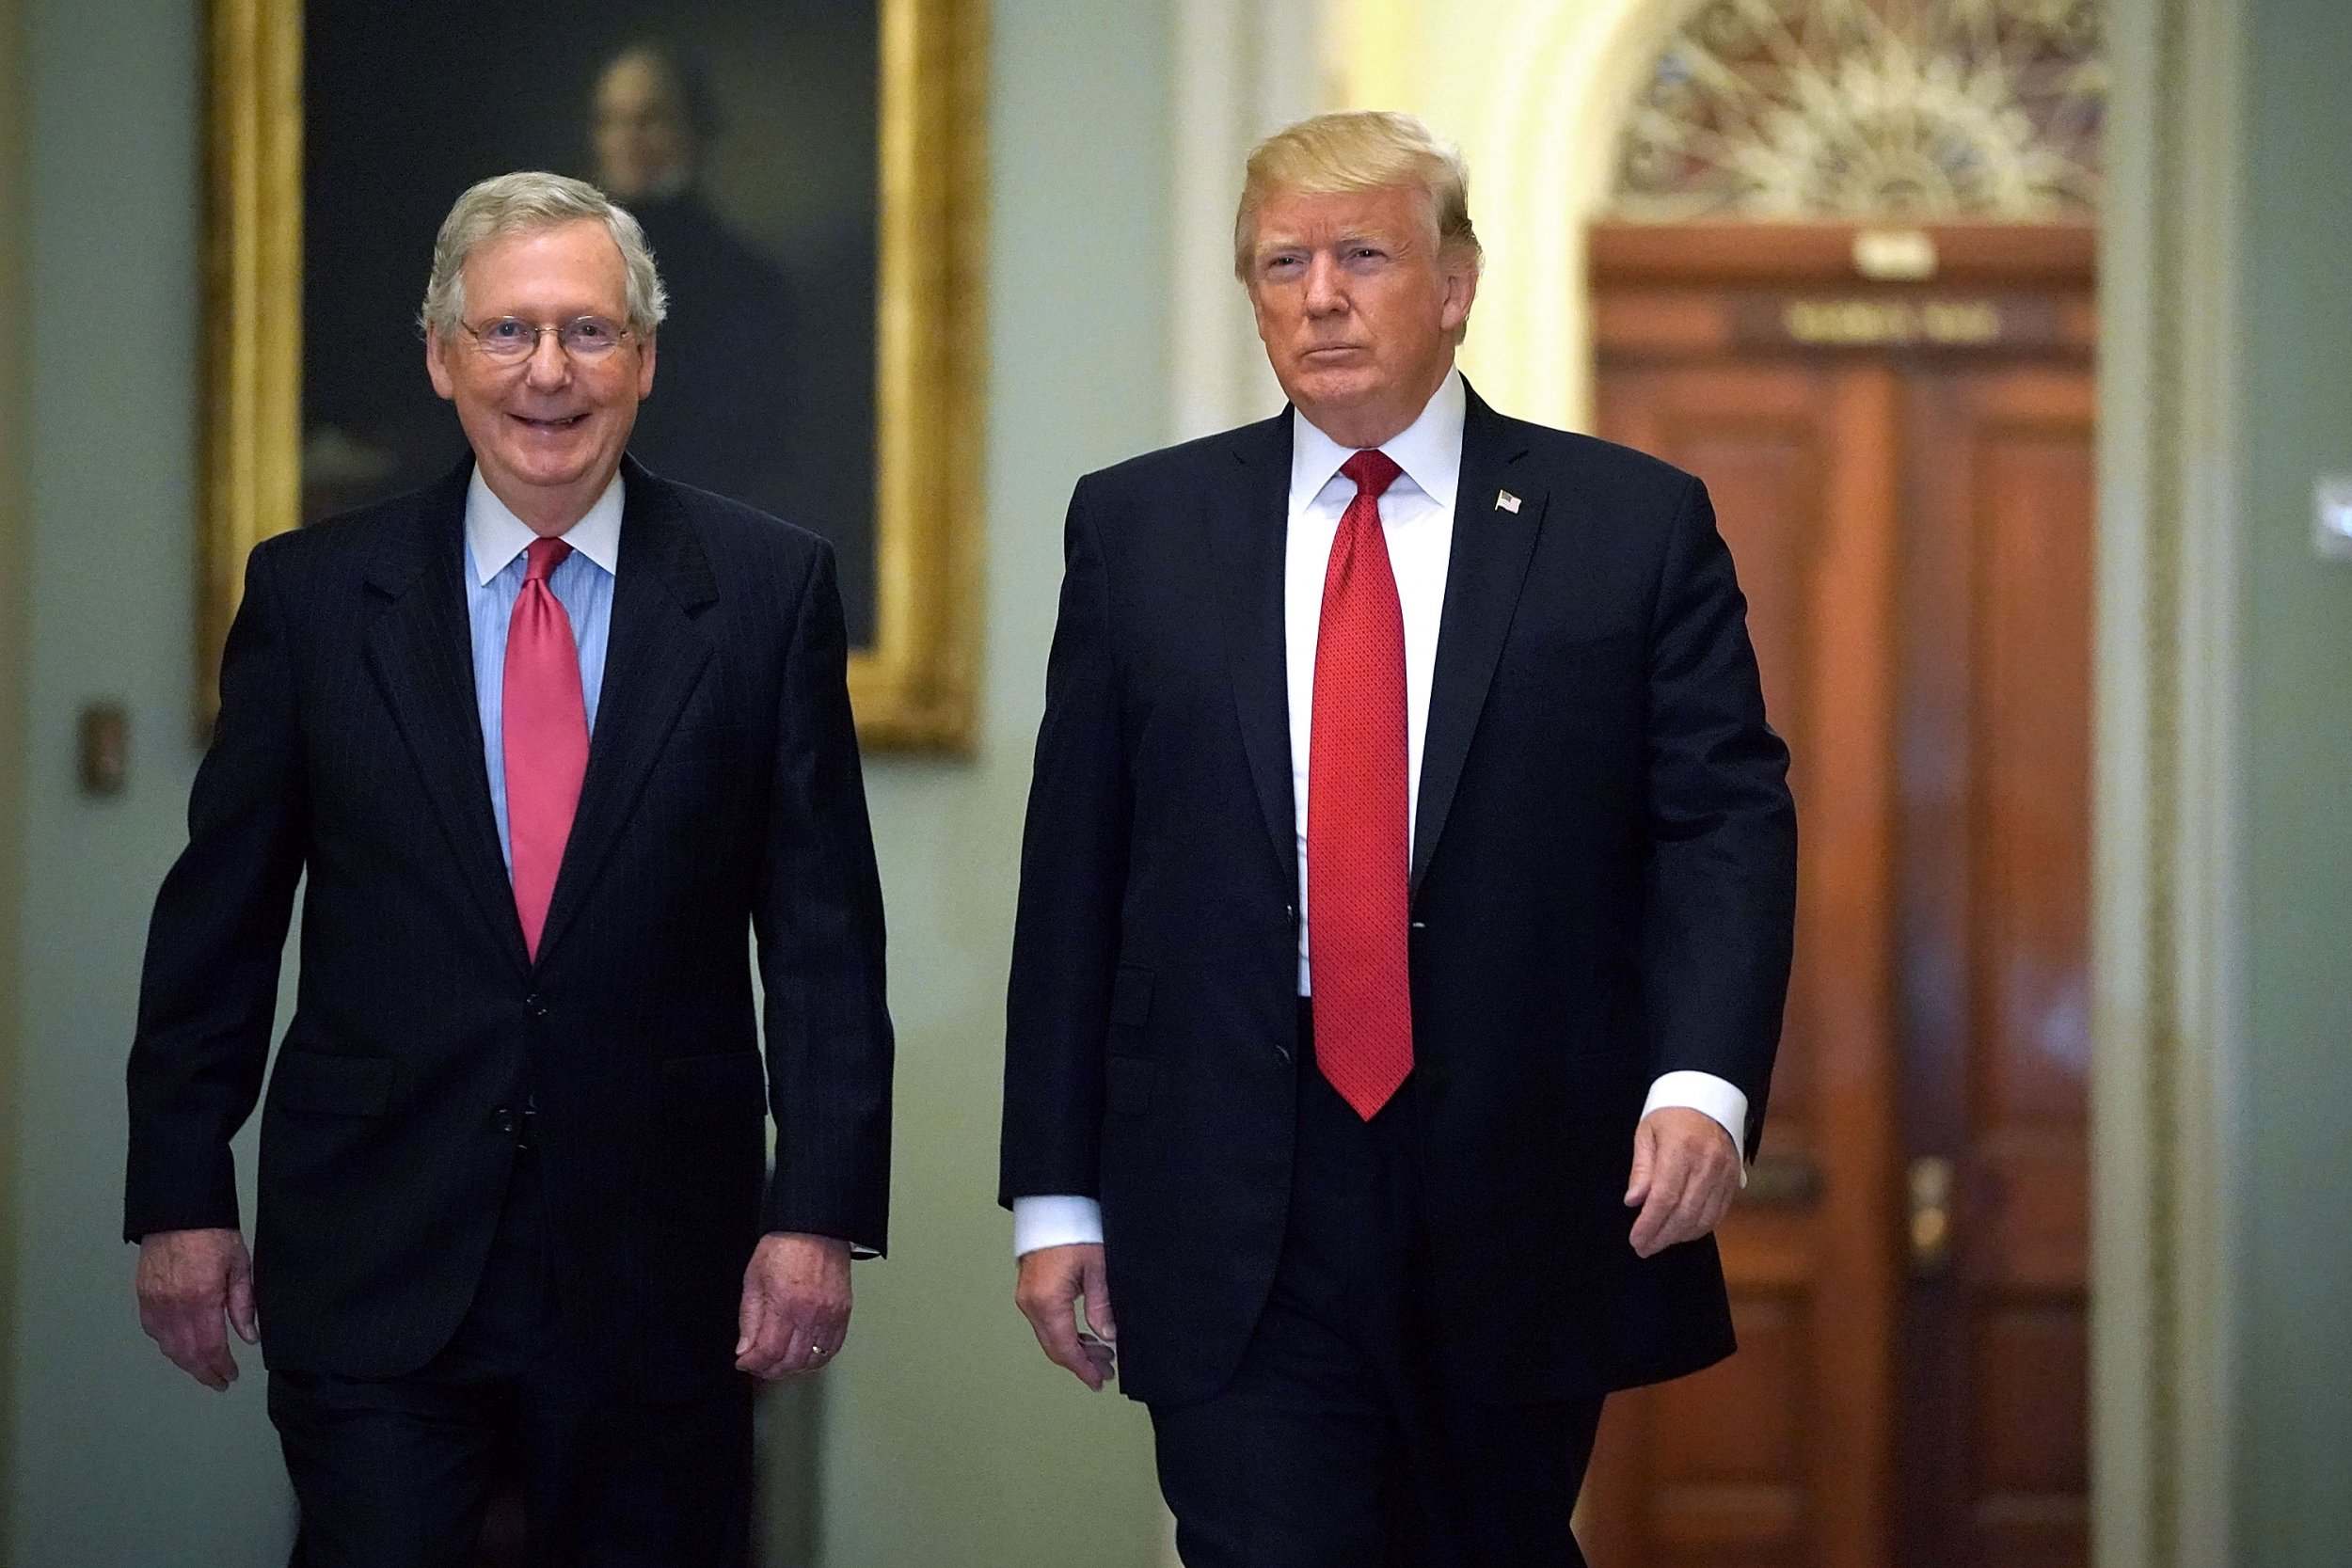 senator mcconnell and president trump